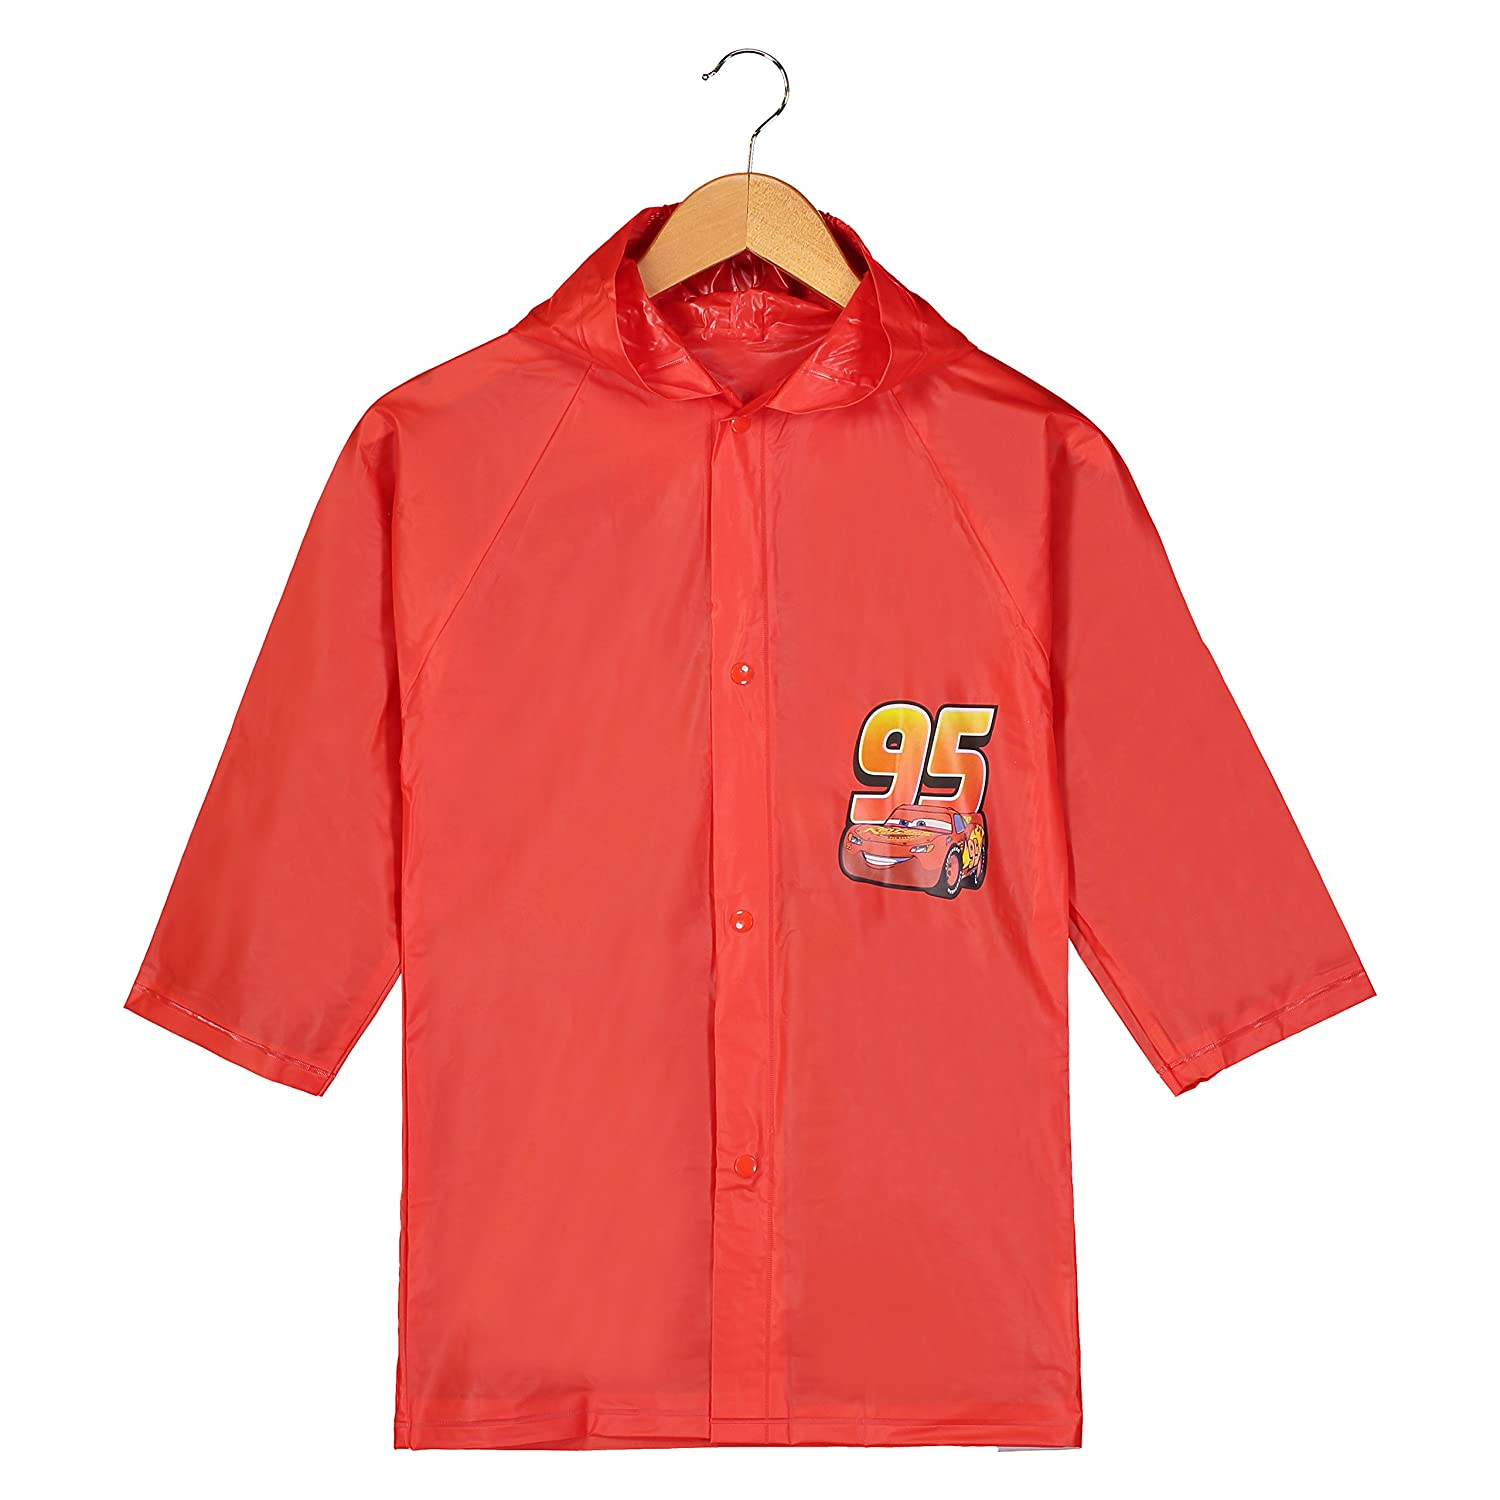 Disney Pixar Cars Little Boys Lightning McQueen Waterproof Outwear Hooded Rain Slicker Toddler